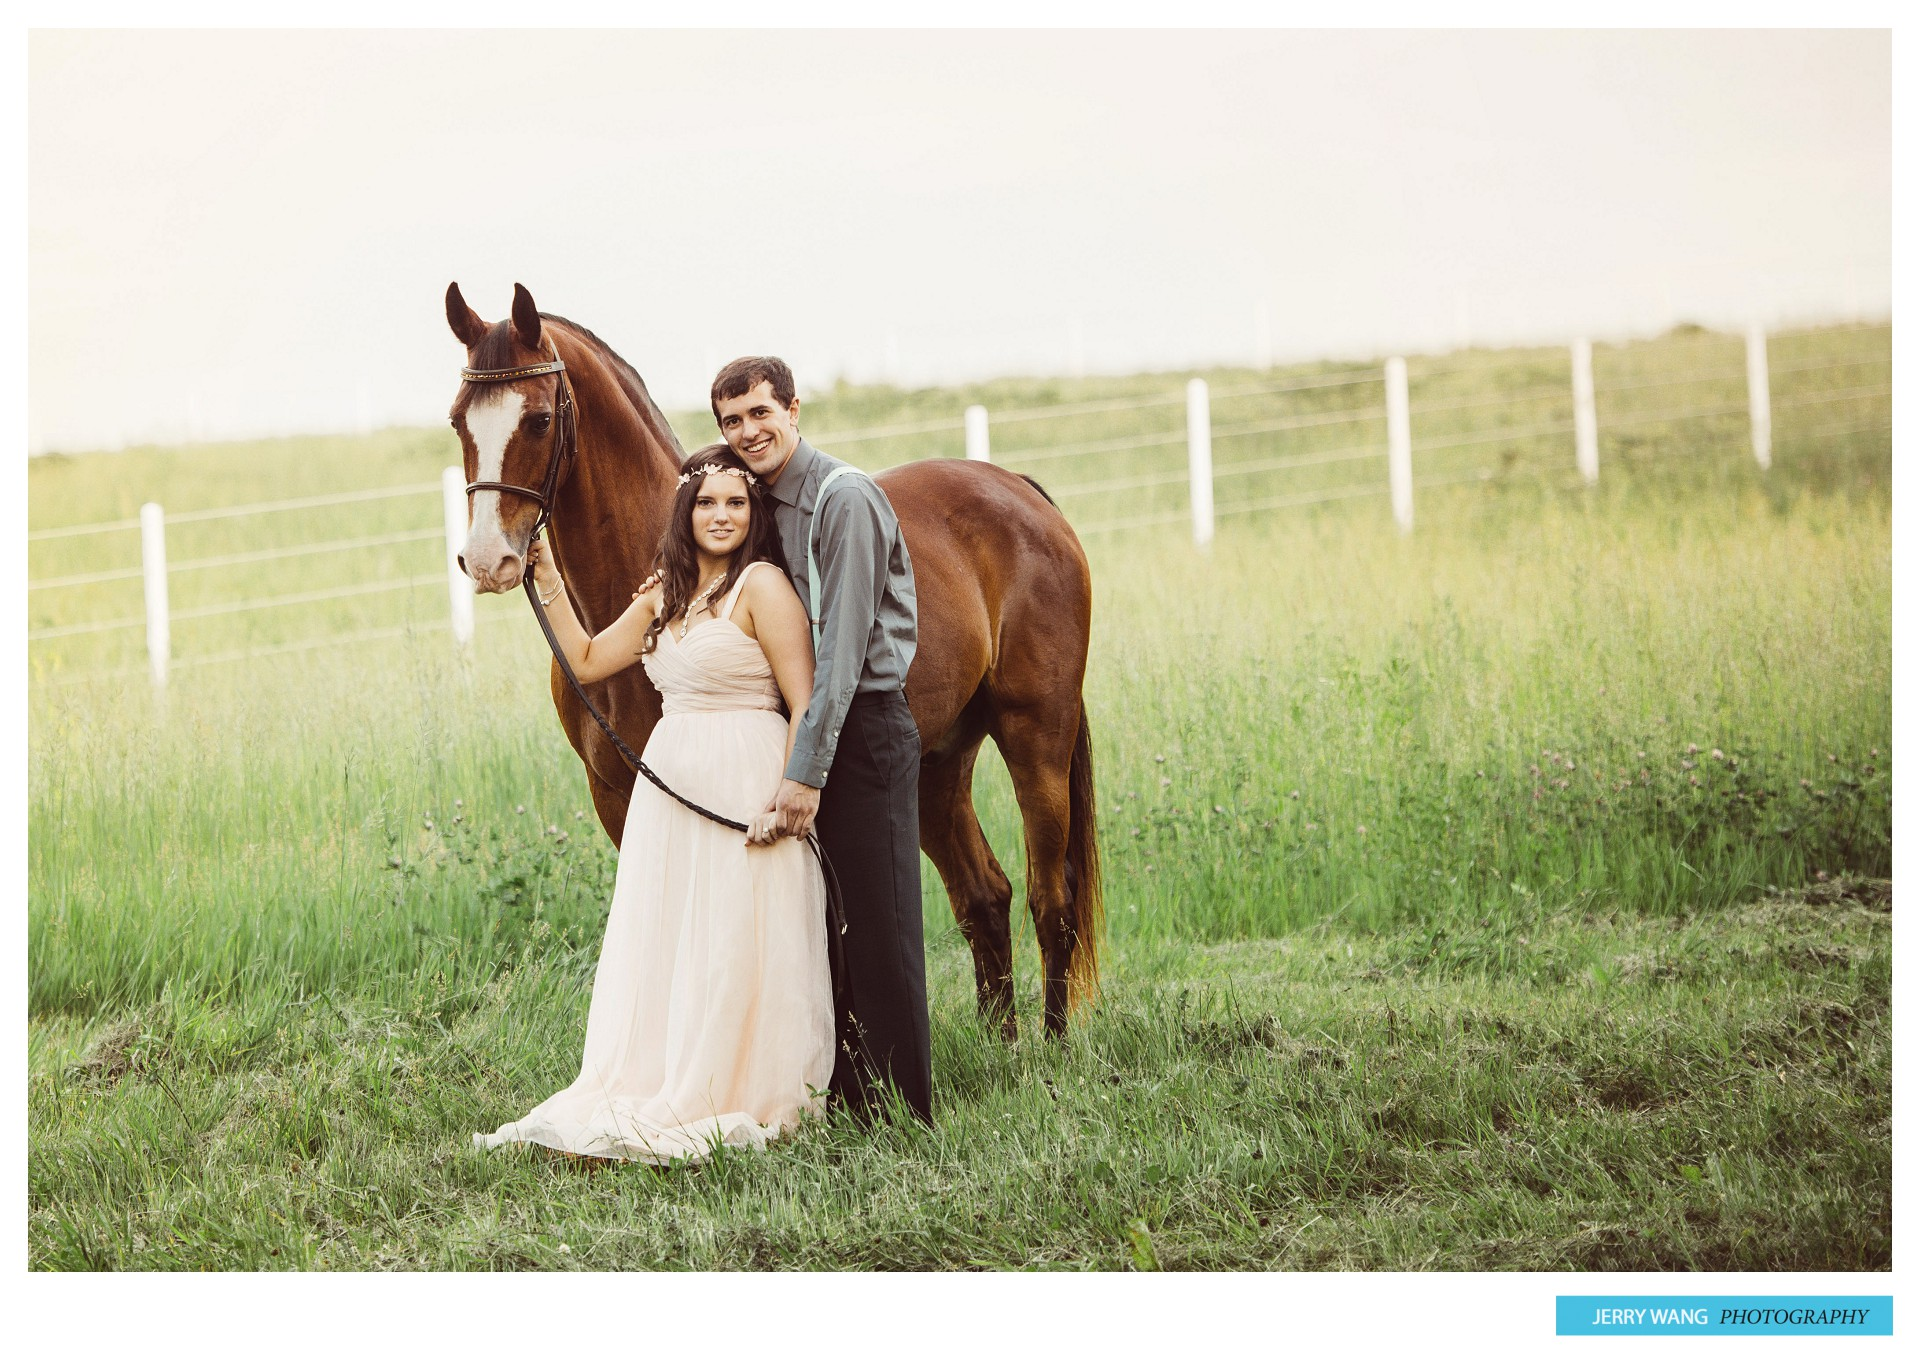 S&B_Spring_Hills_Kansas_Hickory_Creek_Engagement_Session 17